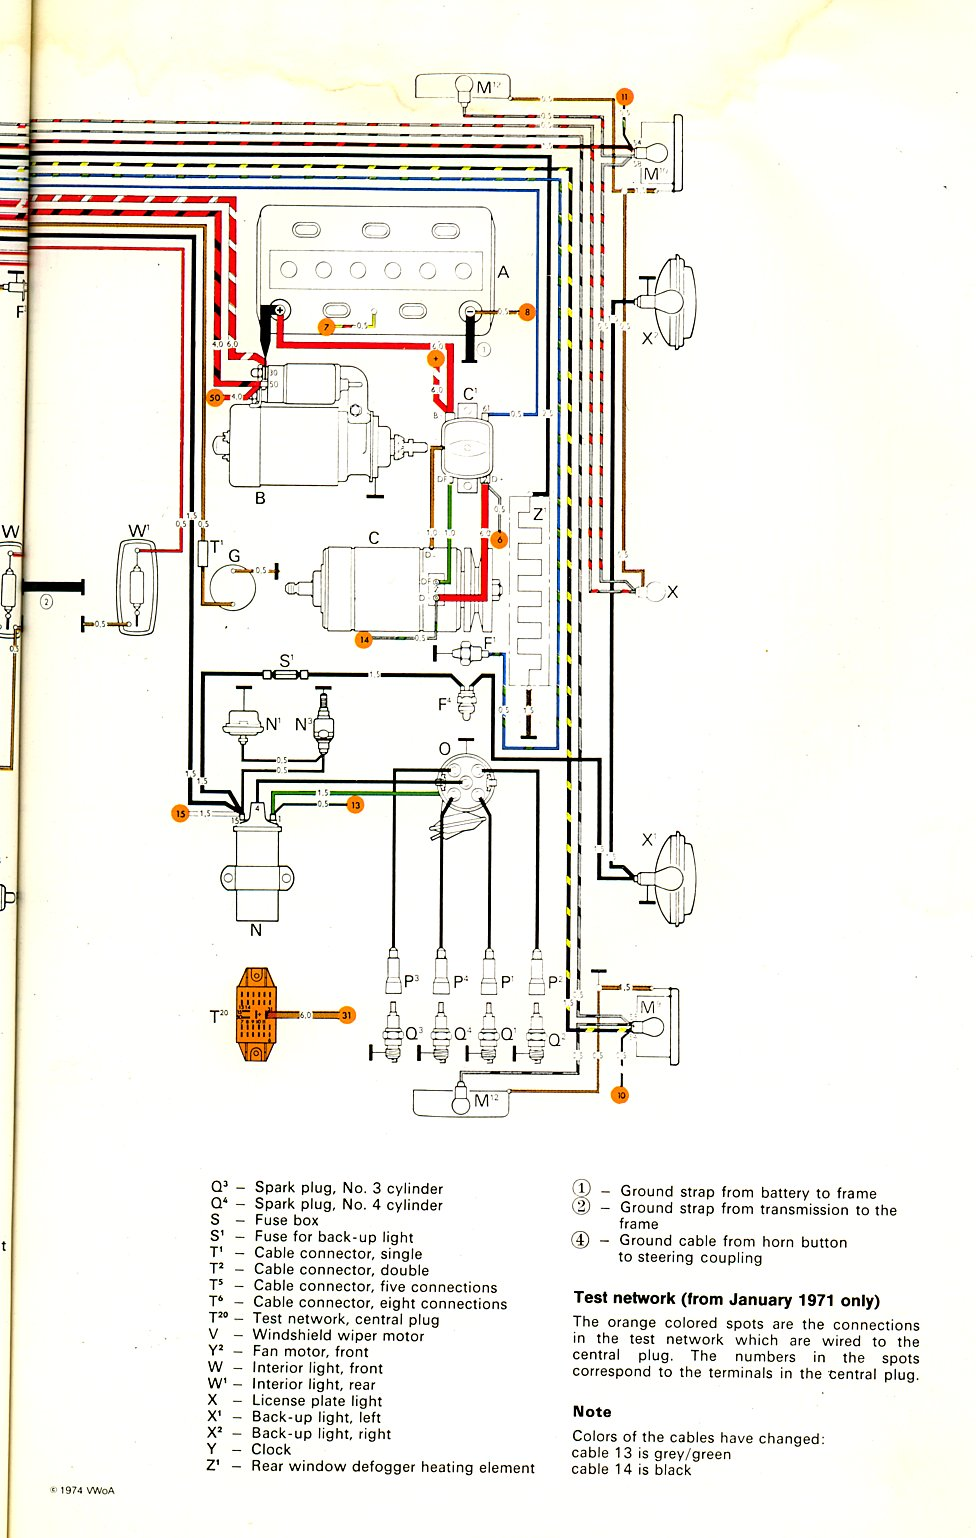 thesamba com type 2 wiring diagrams rh thesamba com 3-Way Switch Wiring Diagram 3-Way Switch Wiring Diagram